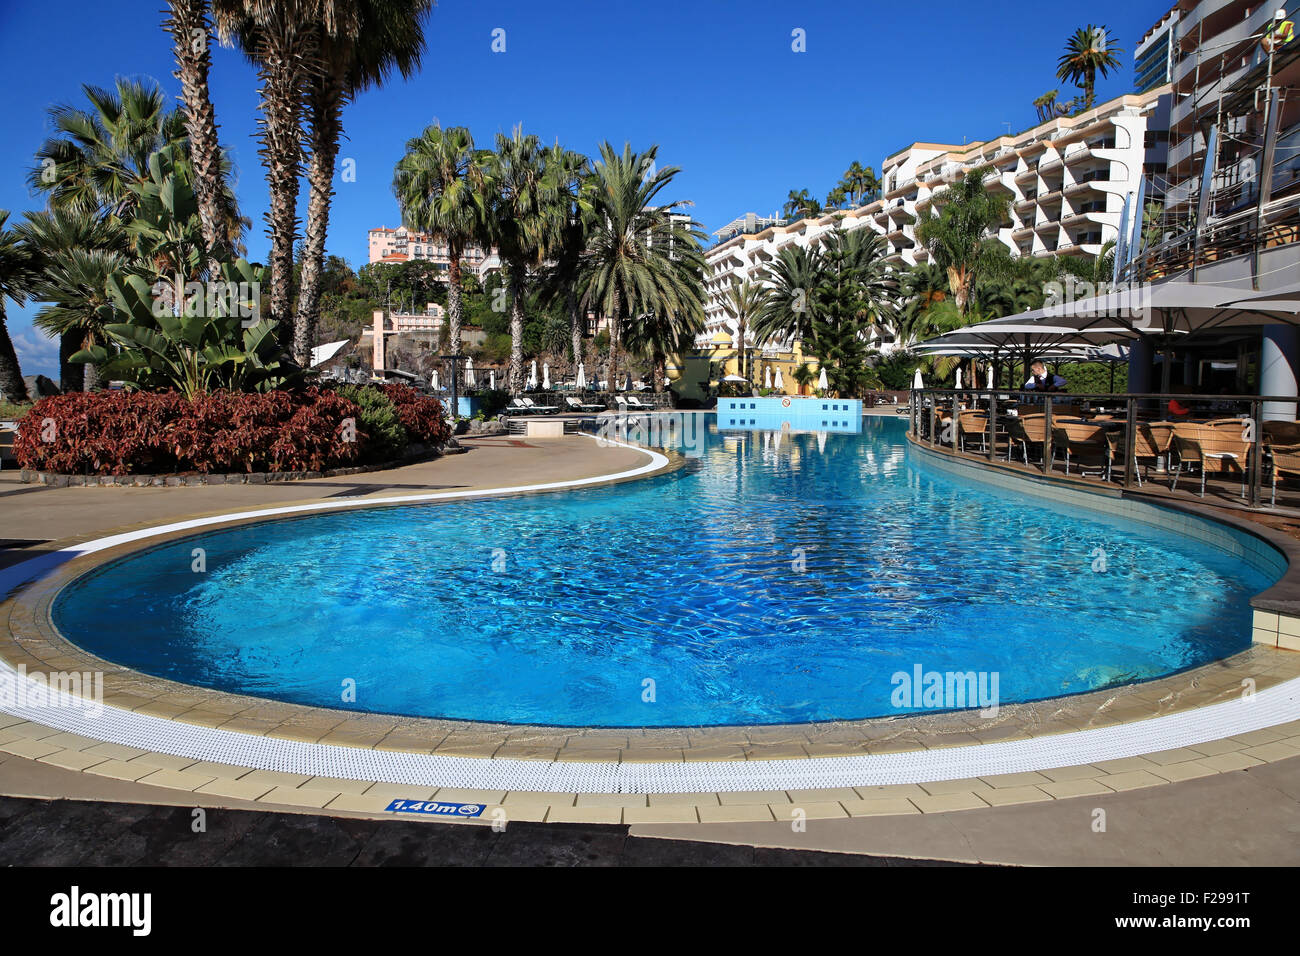 Swimming Pool, Royal Savoy Hotel, Funchal, Madeira, Portugal - Stock Image